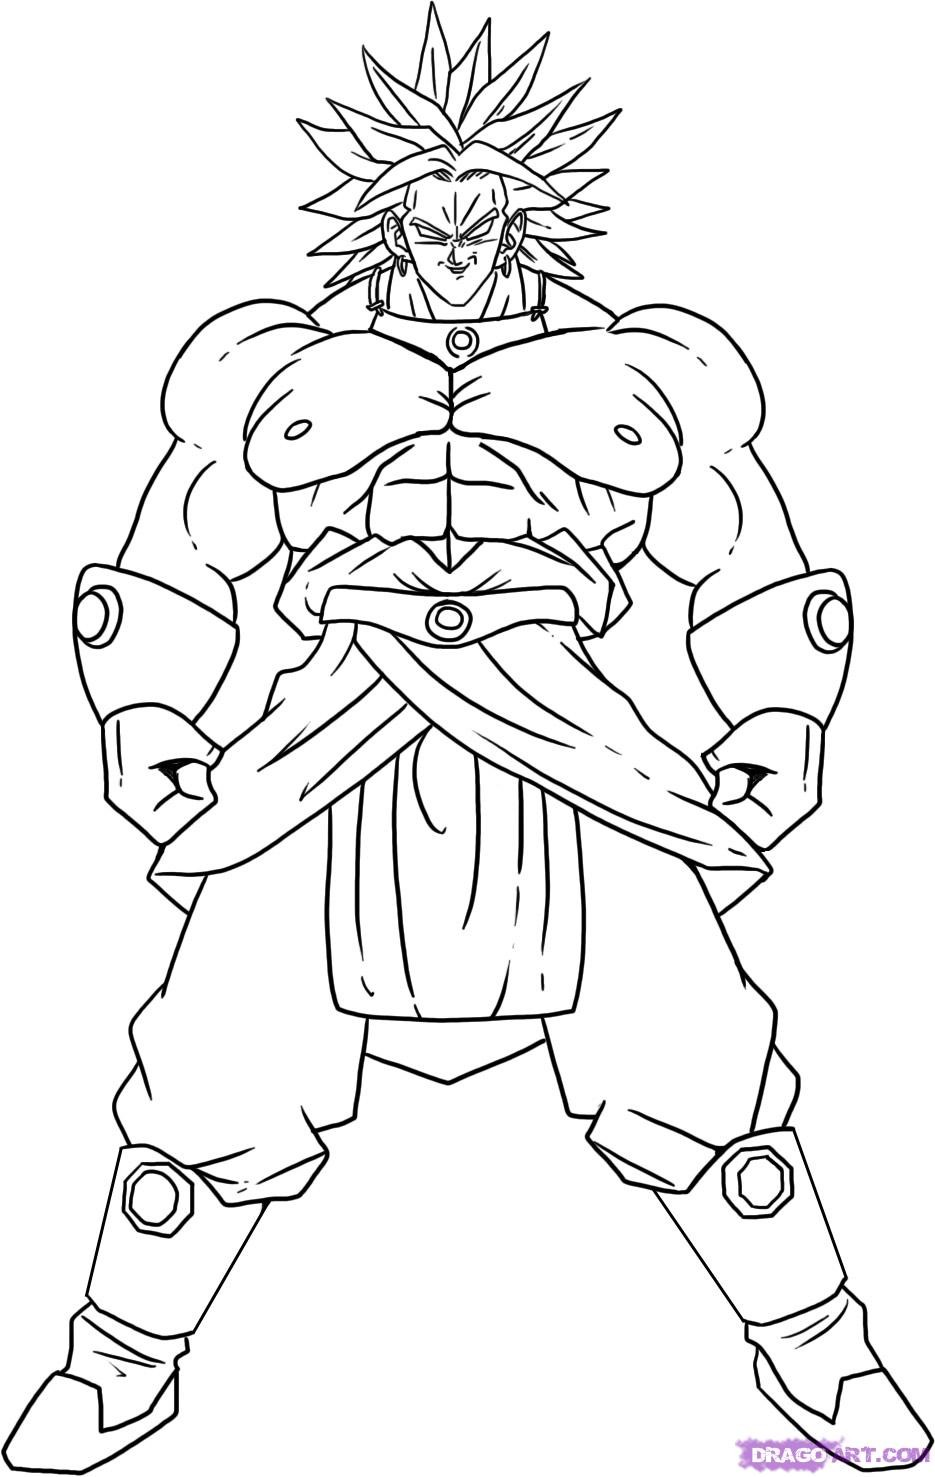 Dragon Ball Z Android 17 Coloring Pages Sketch Coloring Page